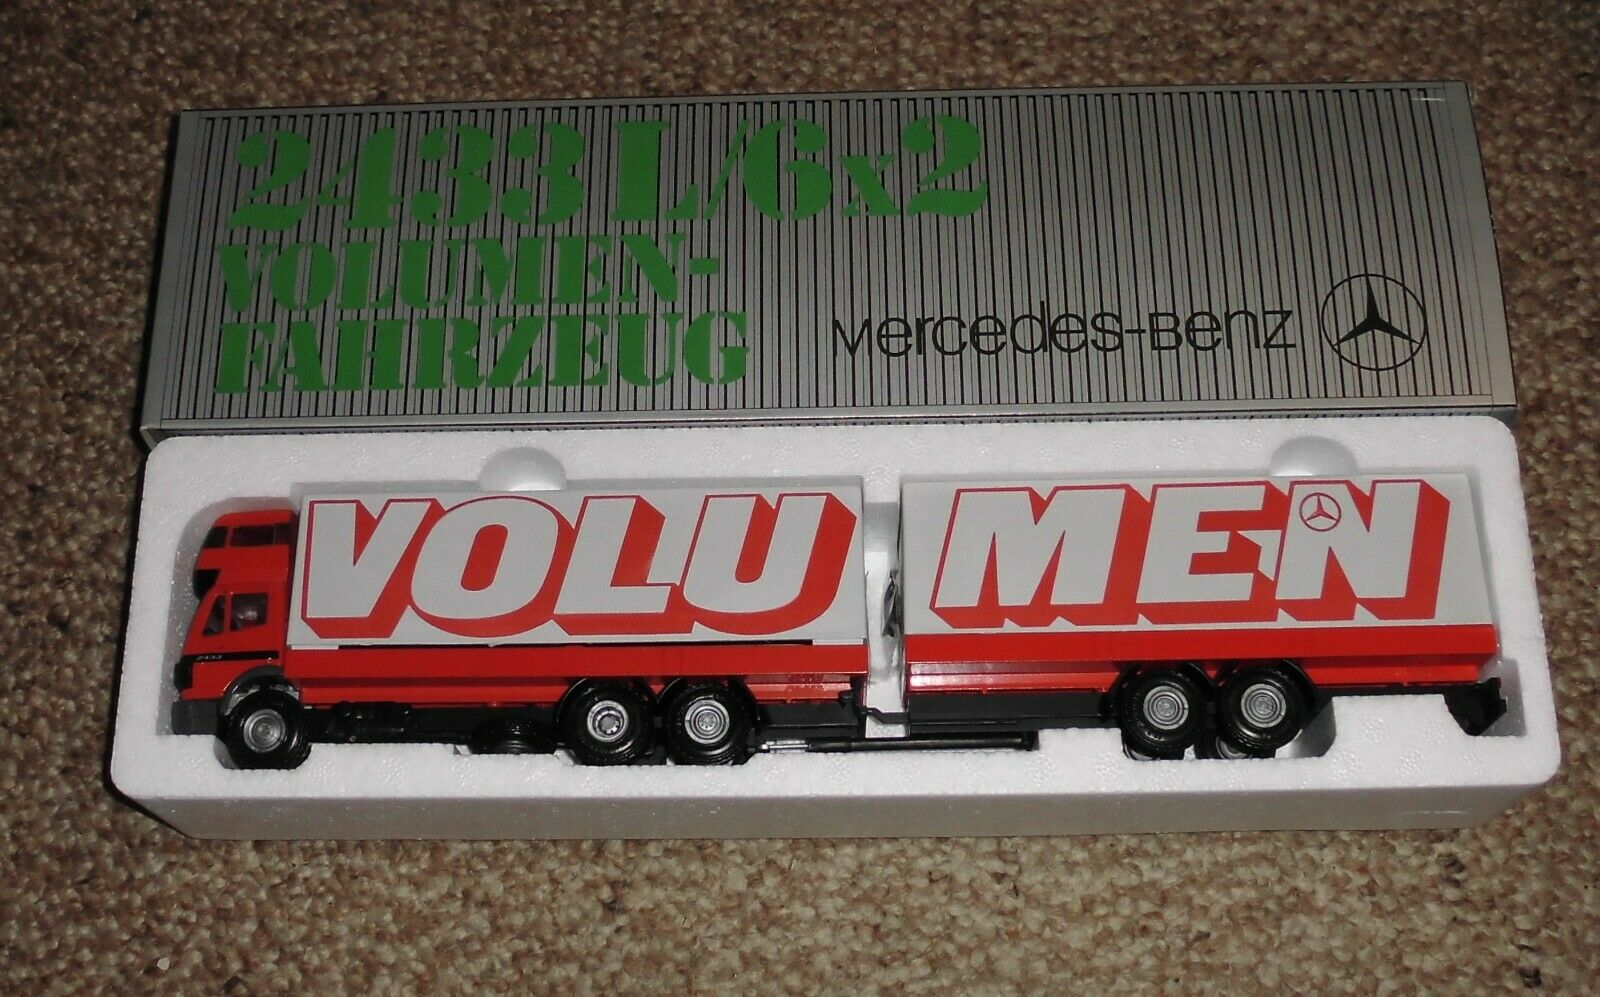 NZG 336 Mercedes-Benz Volumenfahrzeug 2433 - OVP - Made in Germany